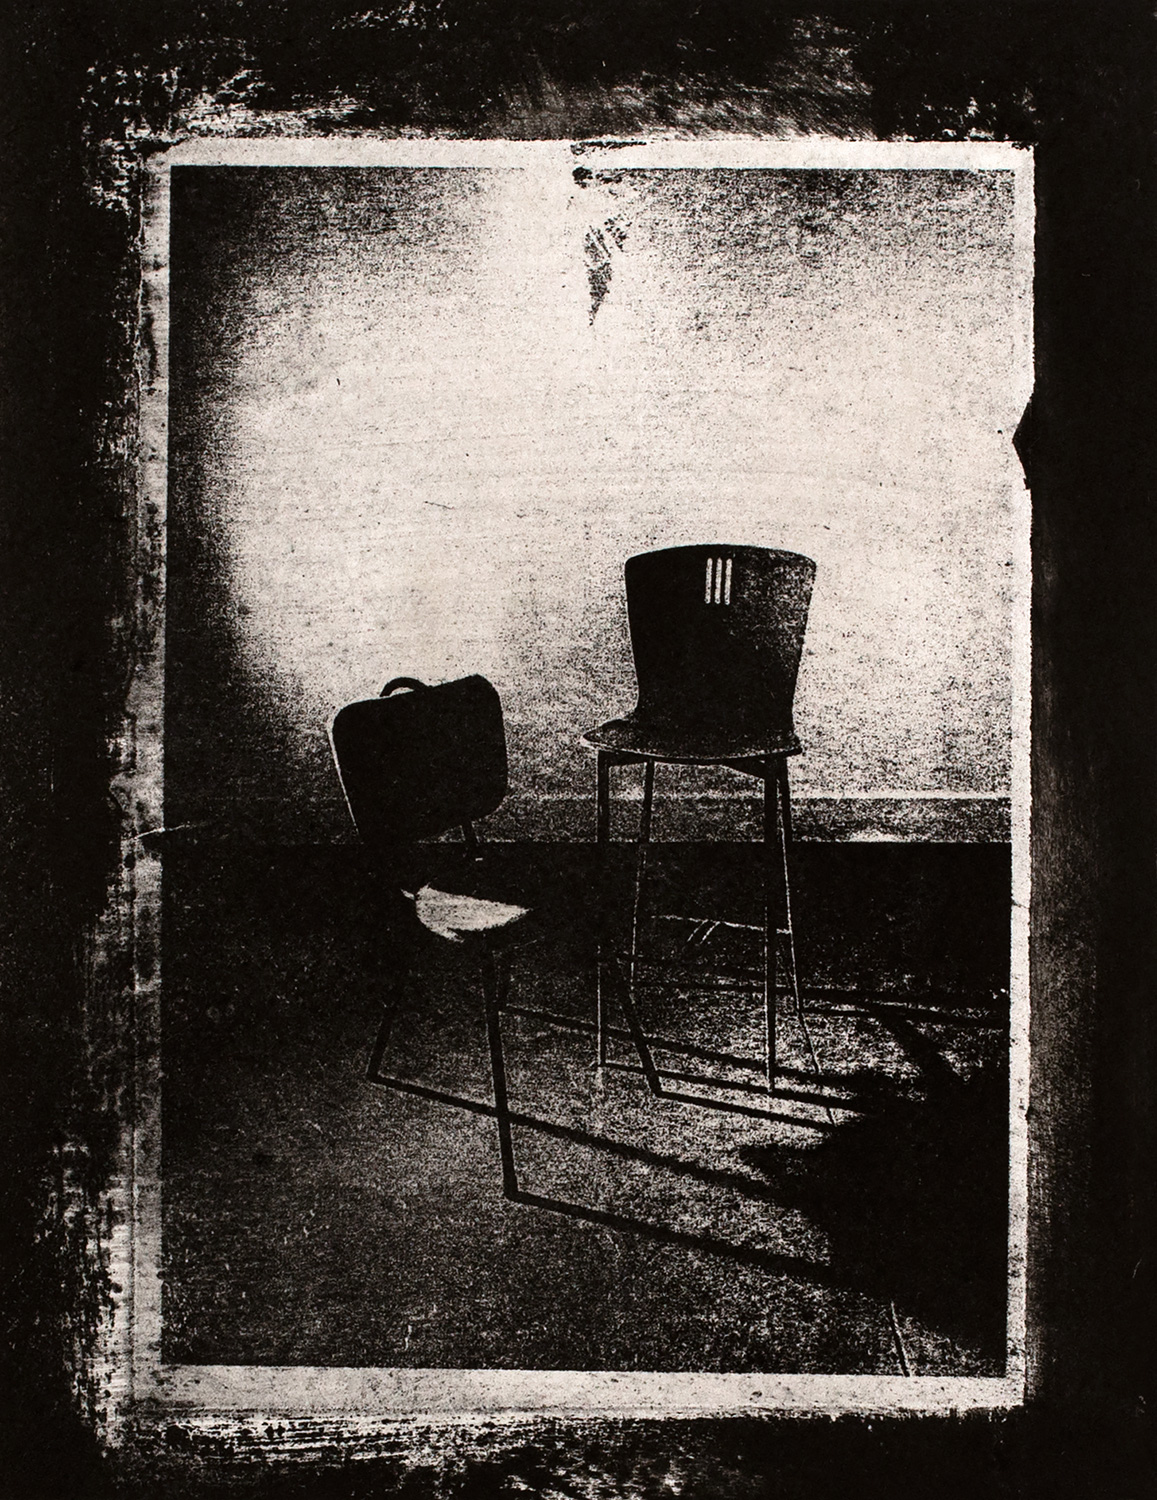 Chairs II , 2016, paper lithograph on Fabriano Artistico 300 gsm, 42 x 29.7 cm